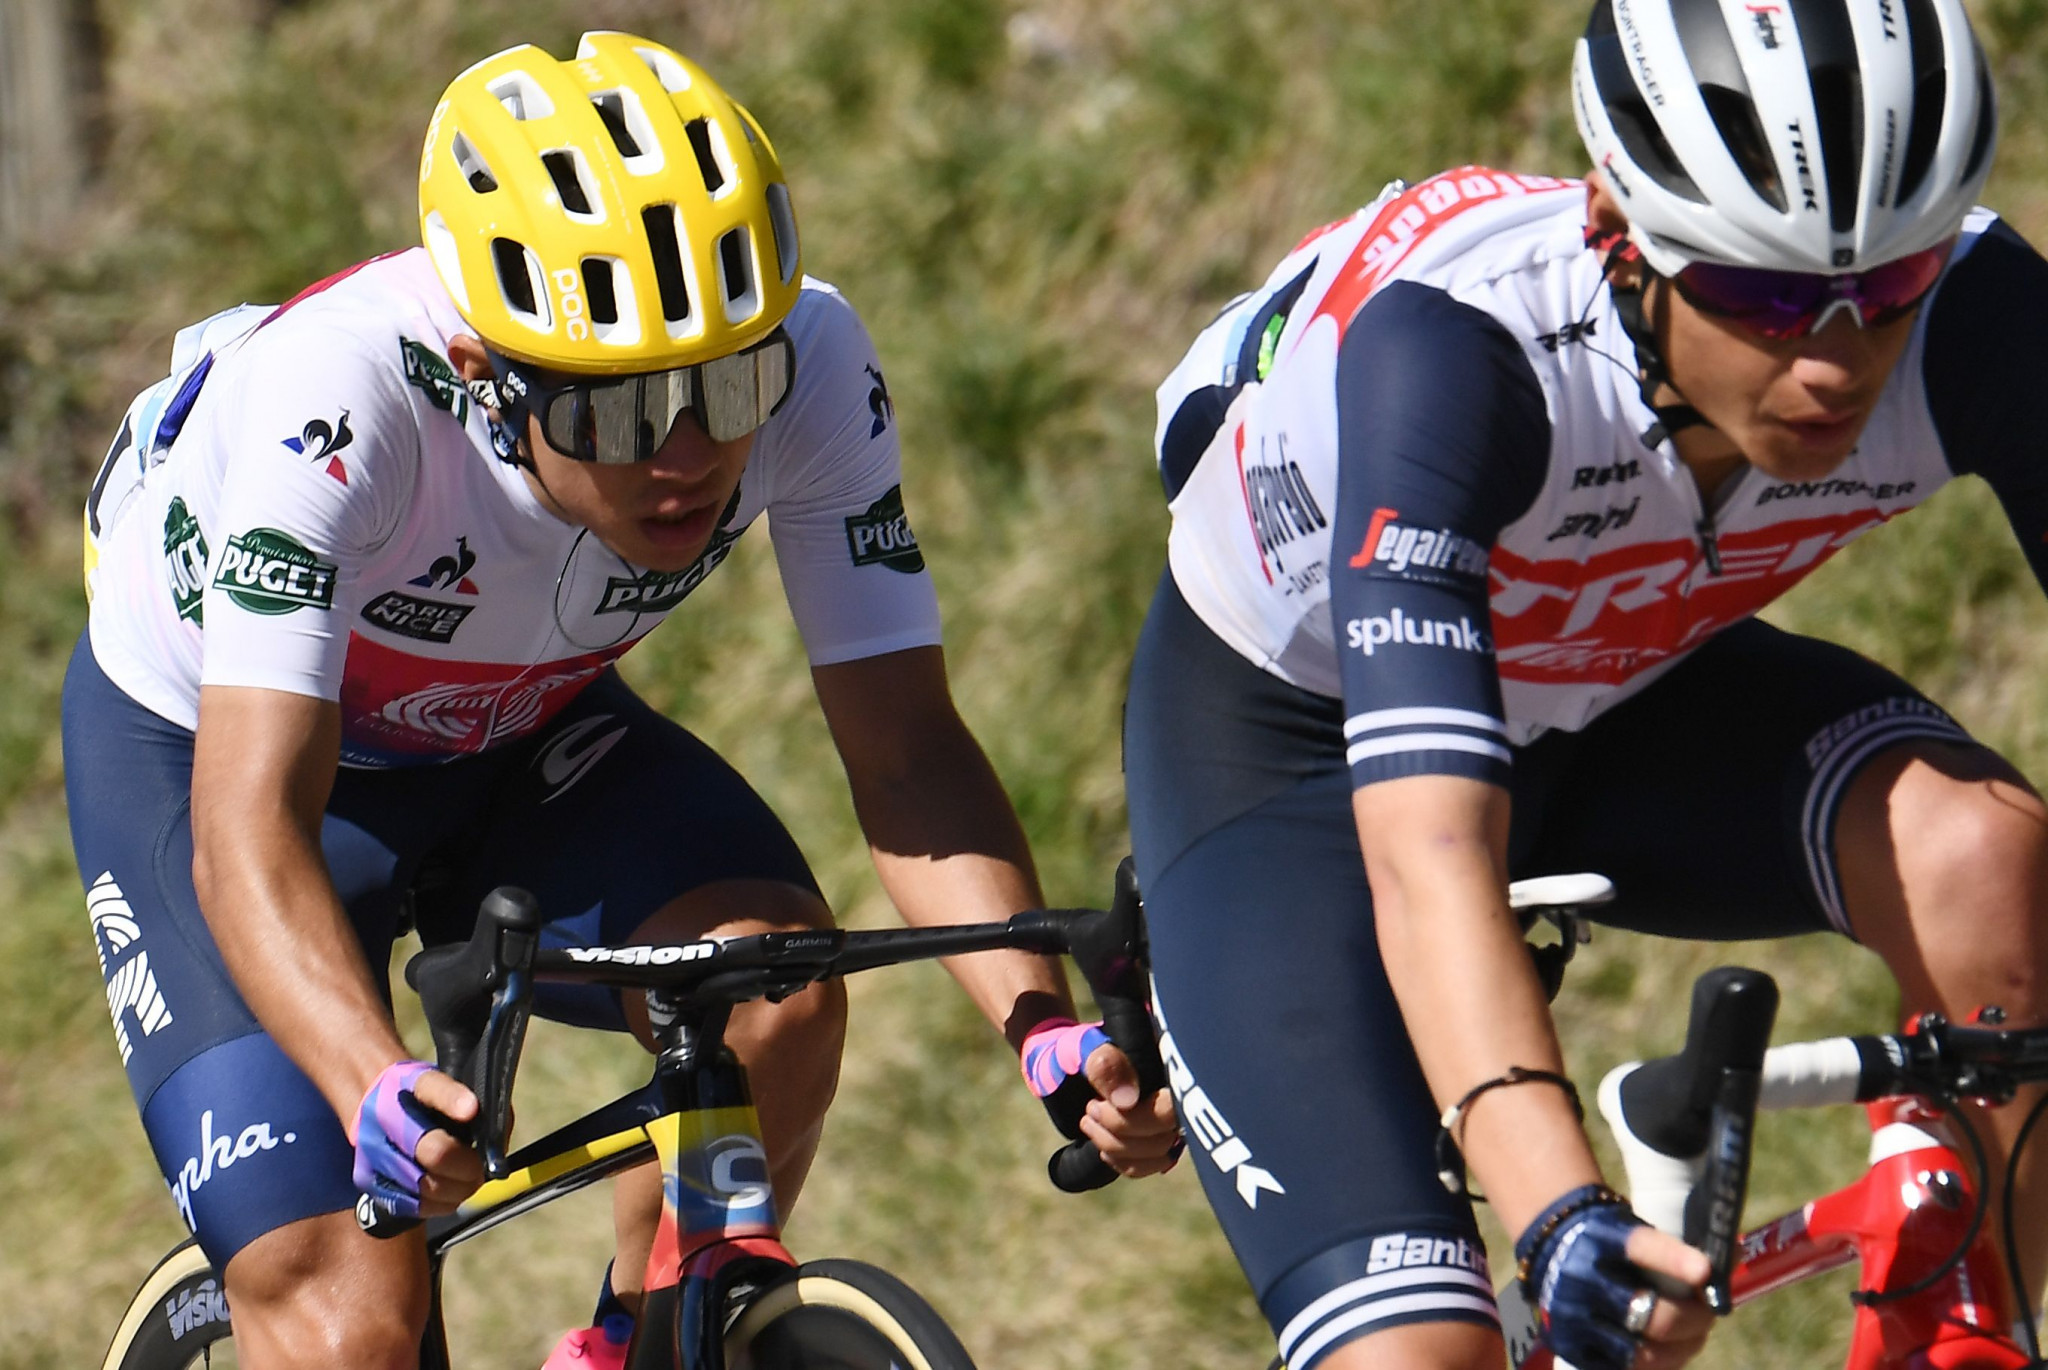 Tour de Suisse cancelled as CCC Team latest to announce cuts over coronavirus